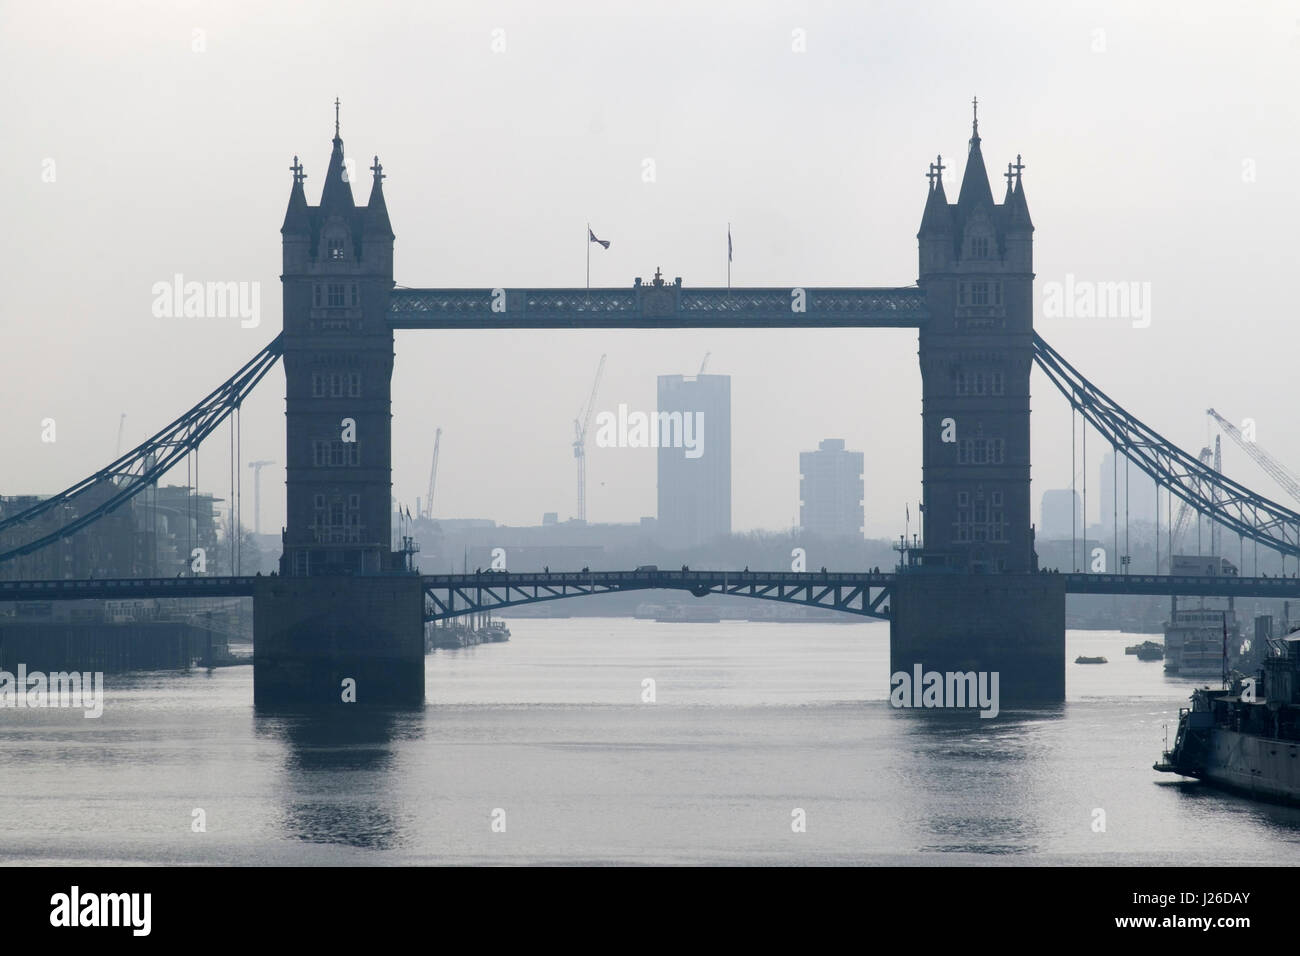 Silhouetted view of the Tower Bridge in London, England, United Kingdom, Europe - Stock Image